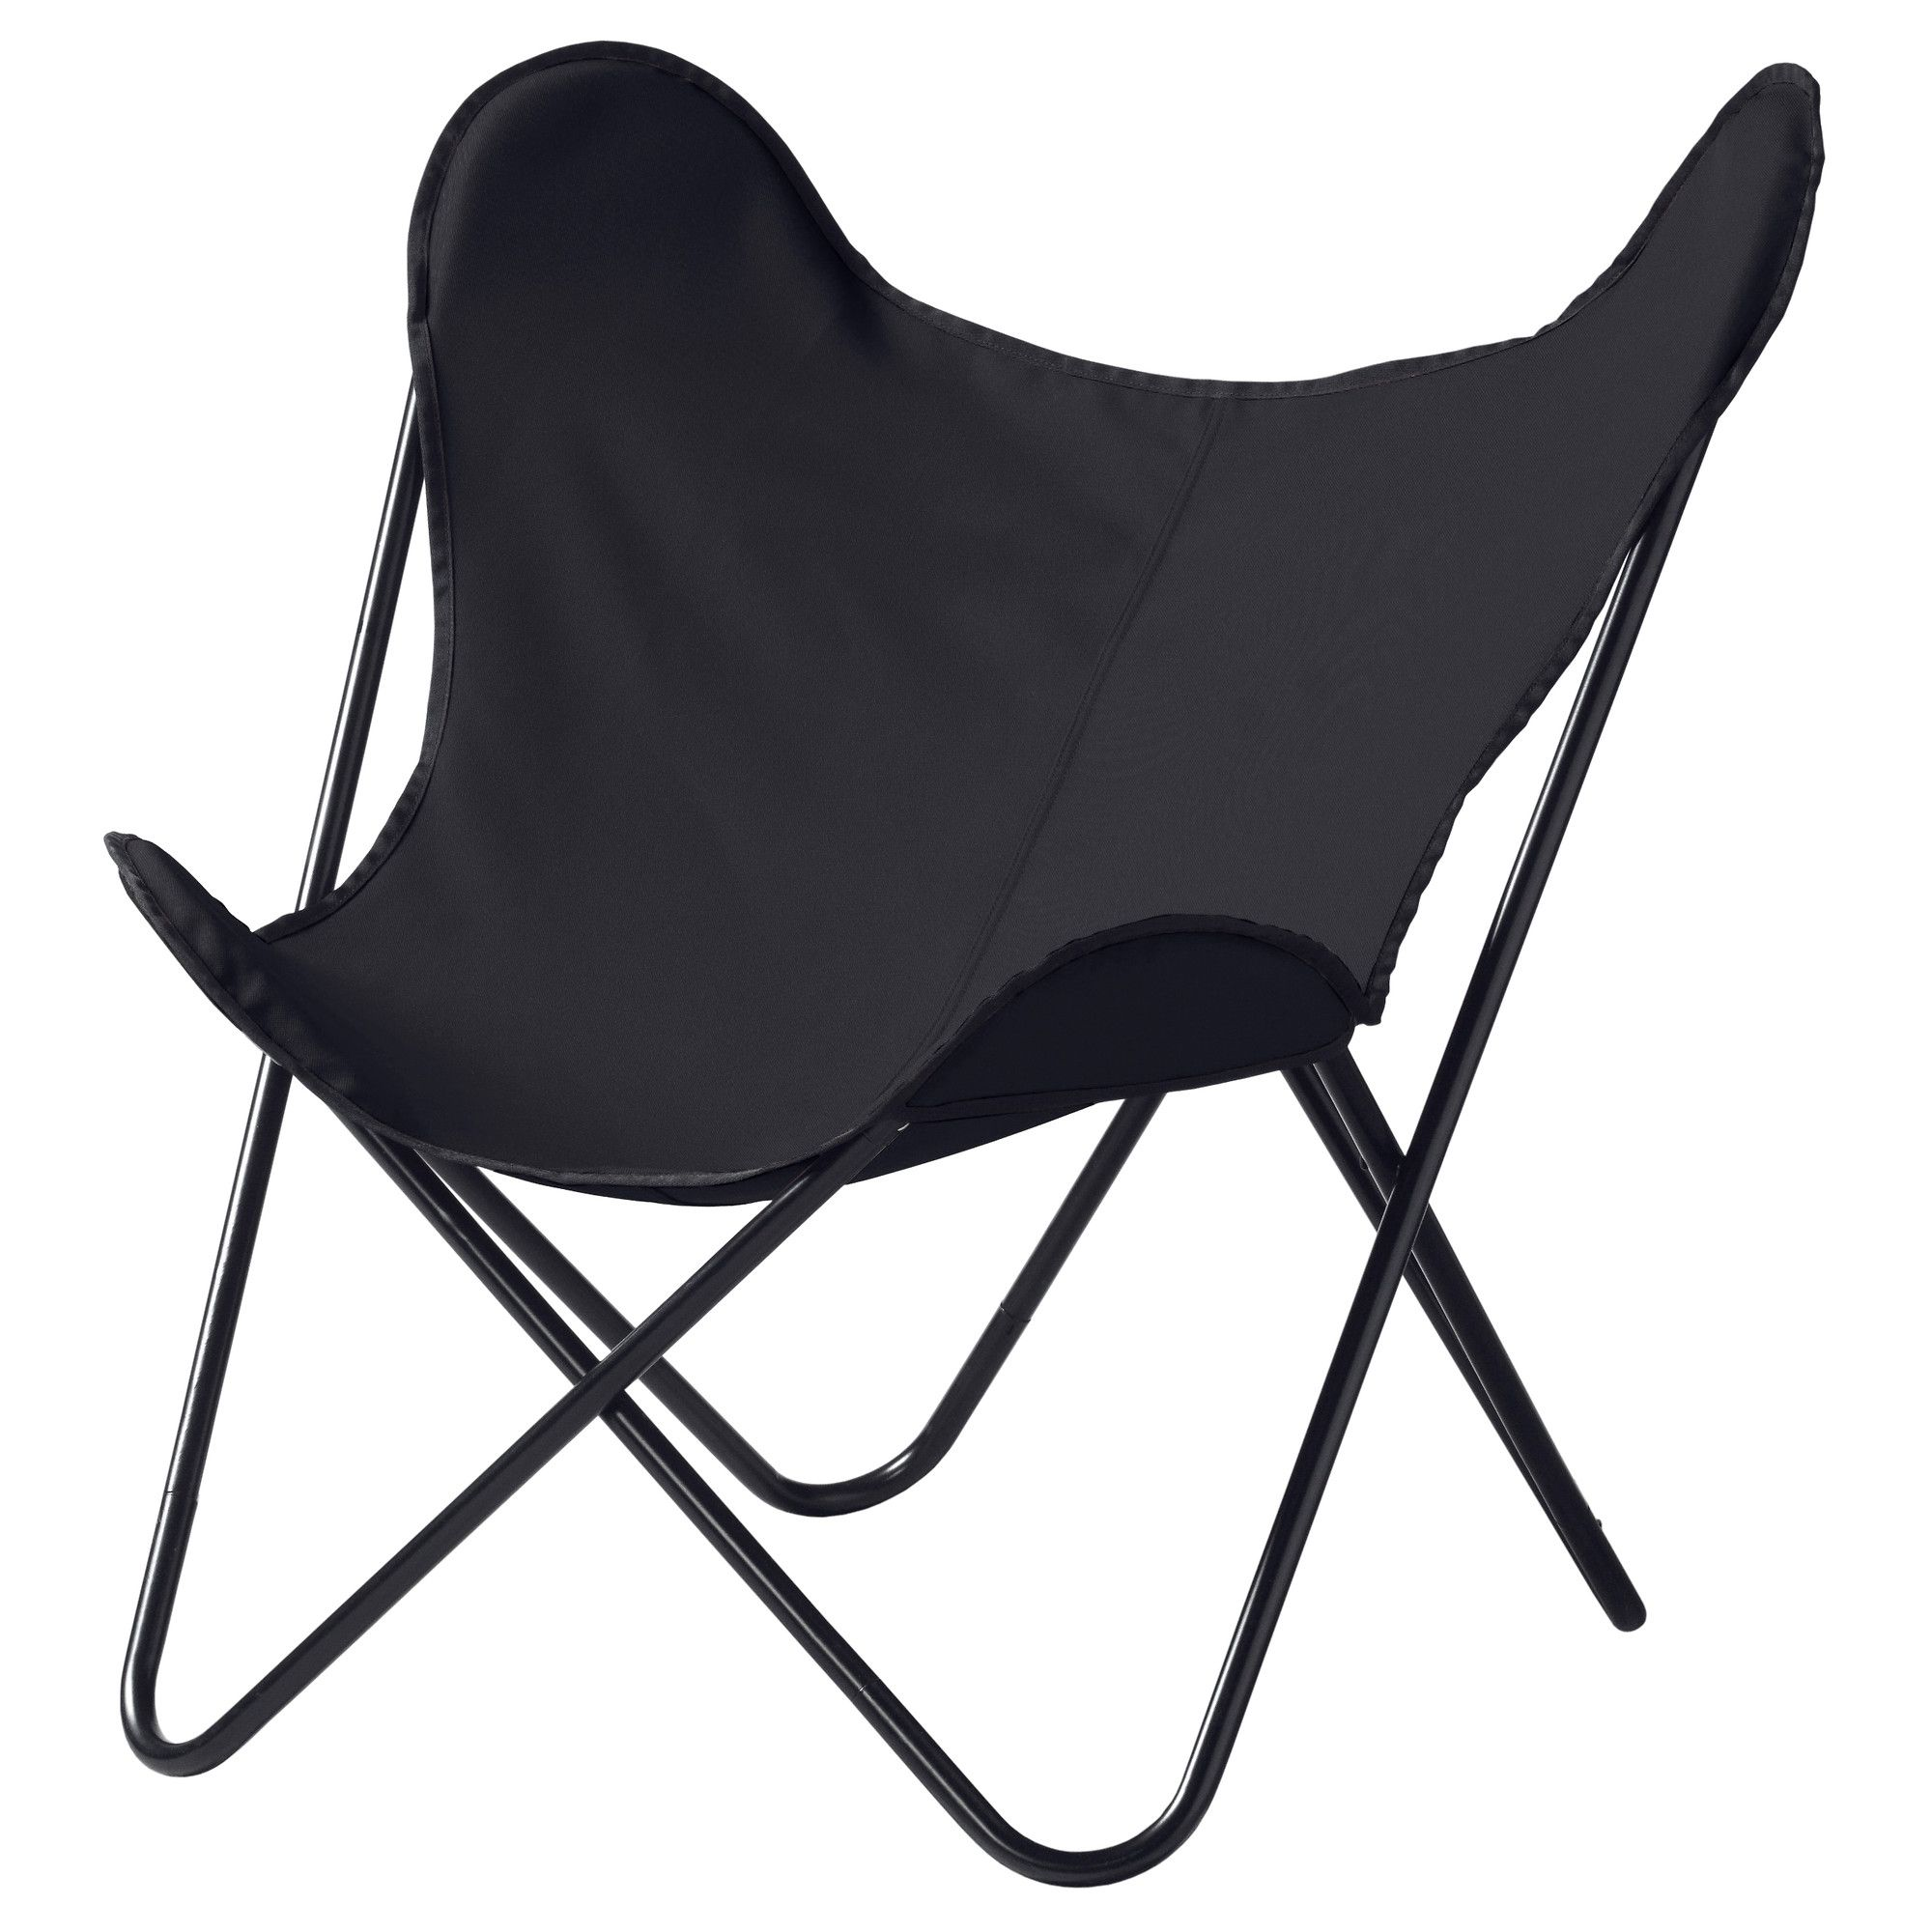 Butterfly chair black - Ikea Kl Ppa Easy Chair Black The Cover Is Easy To Keep Clean As It Is Removable And Can Be Washed The Armchair Is Lightweight And Easy To Move If You